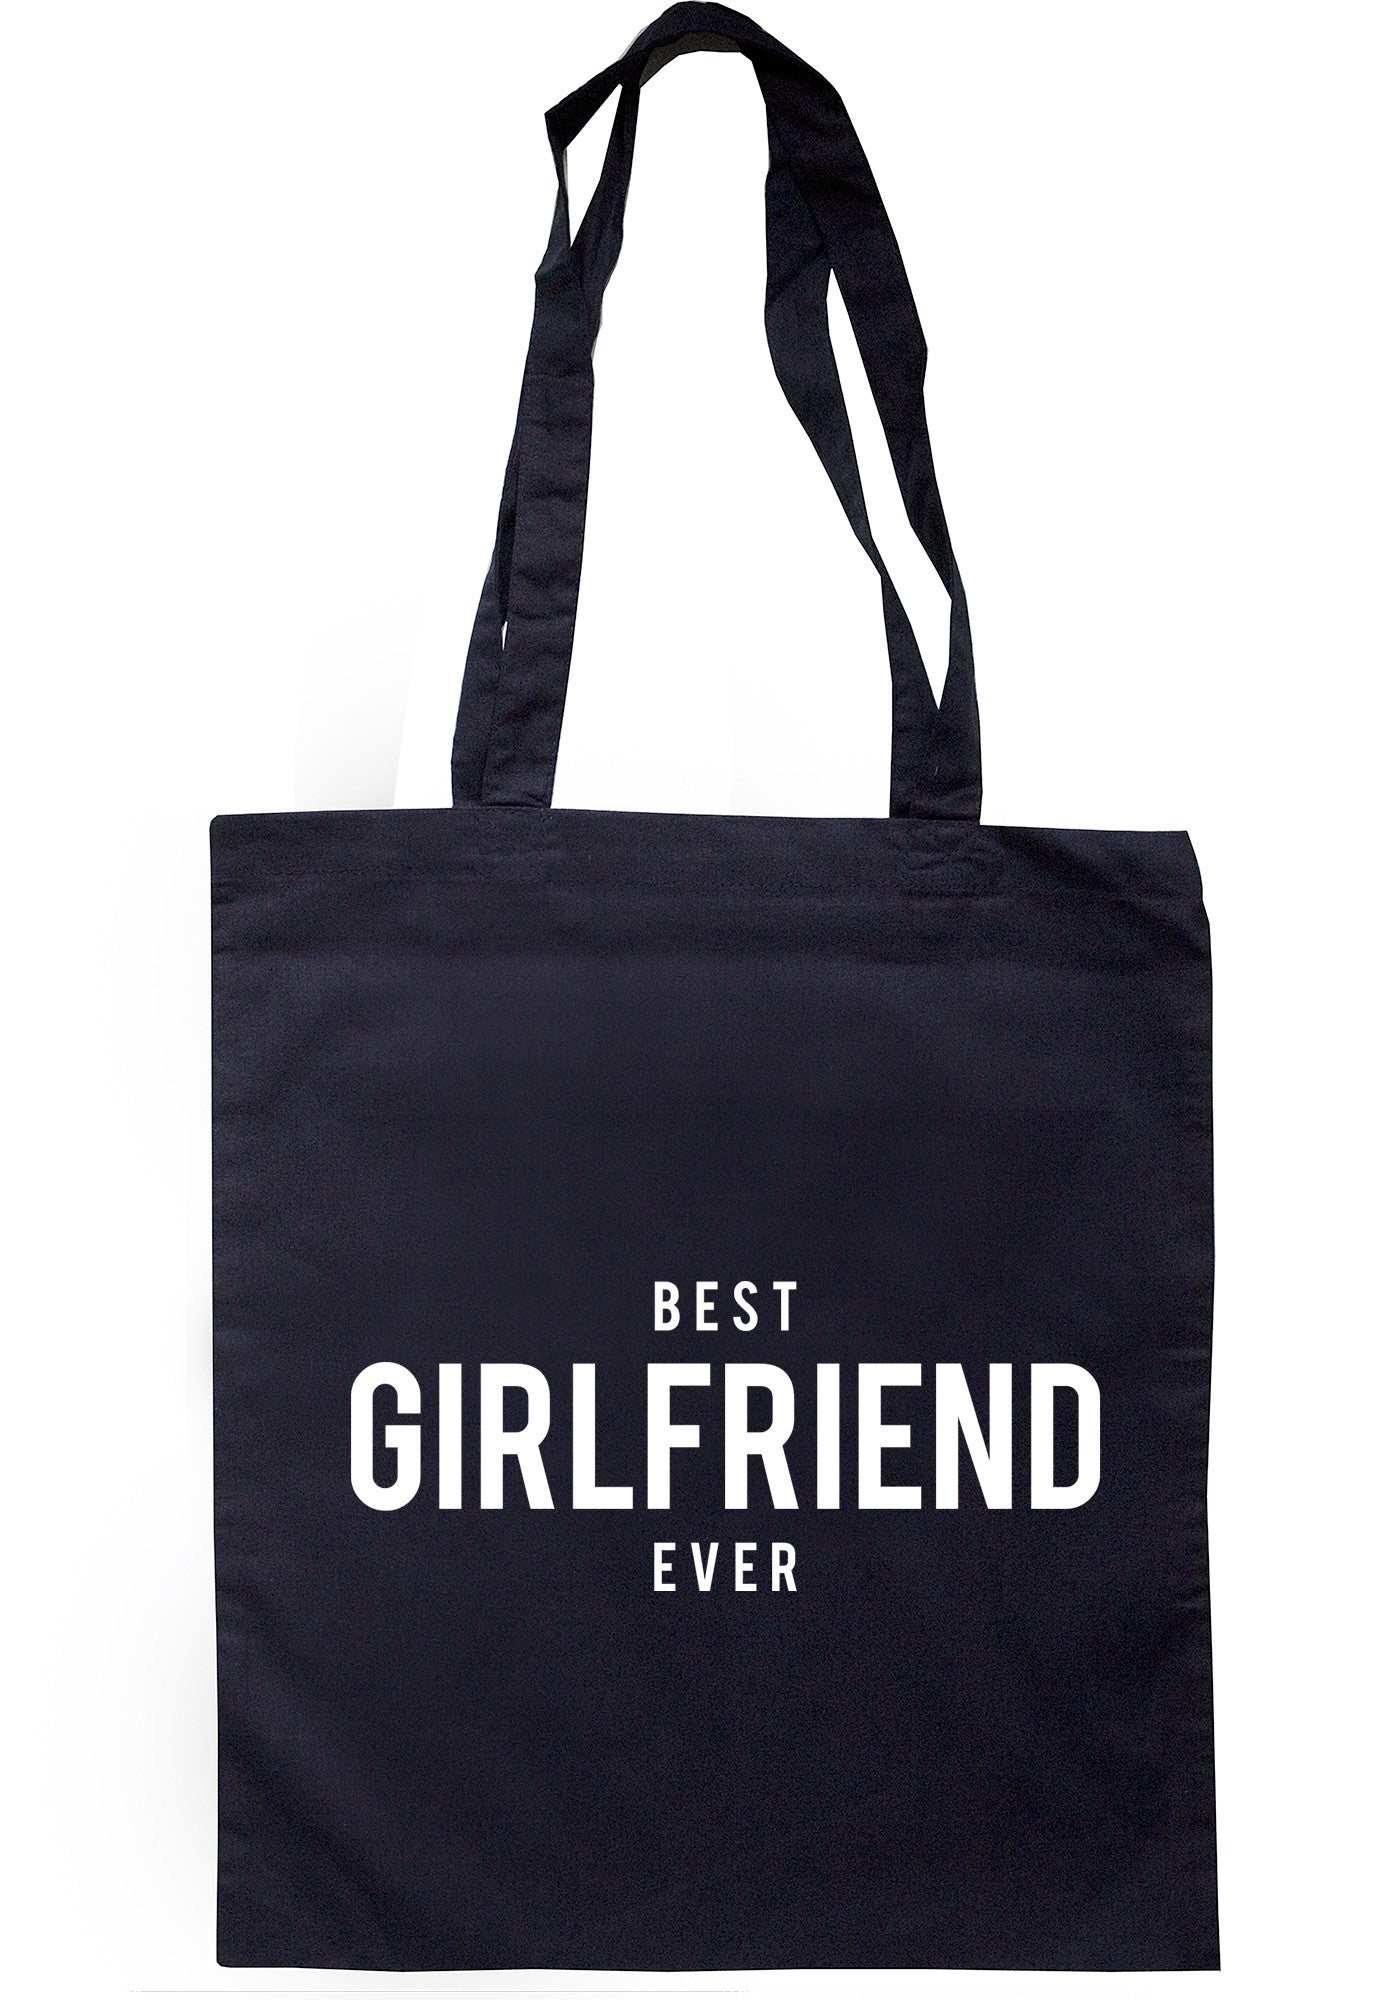 Best Girlfriend Ever Tote Bag TB1262